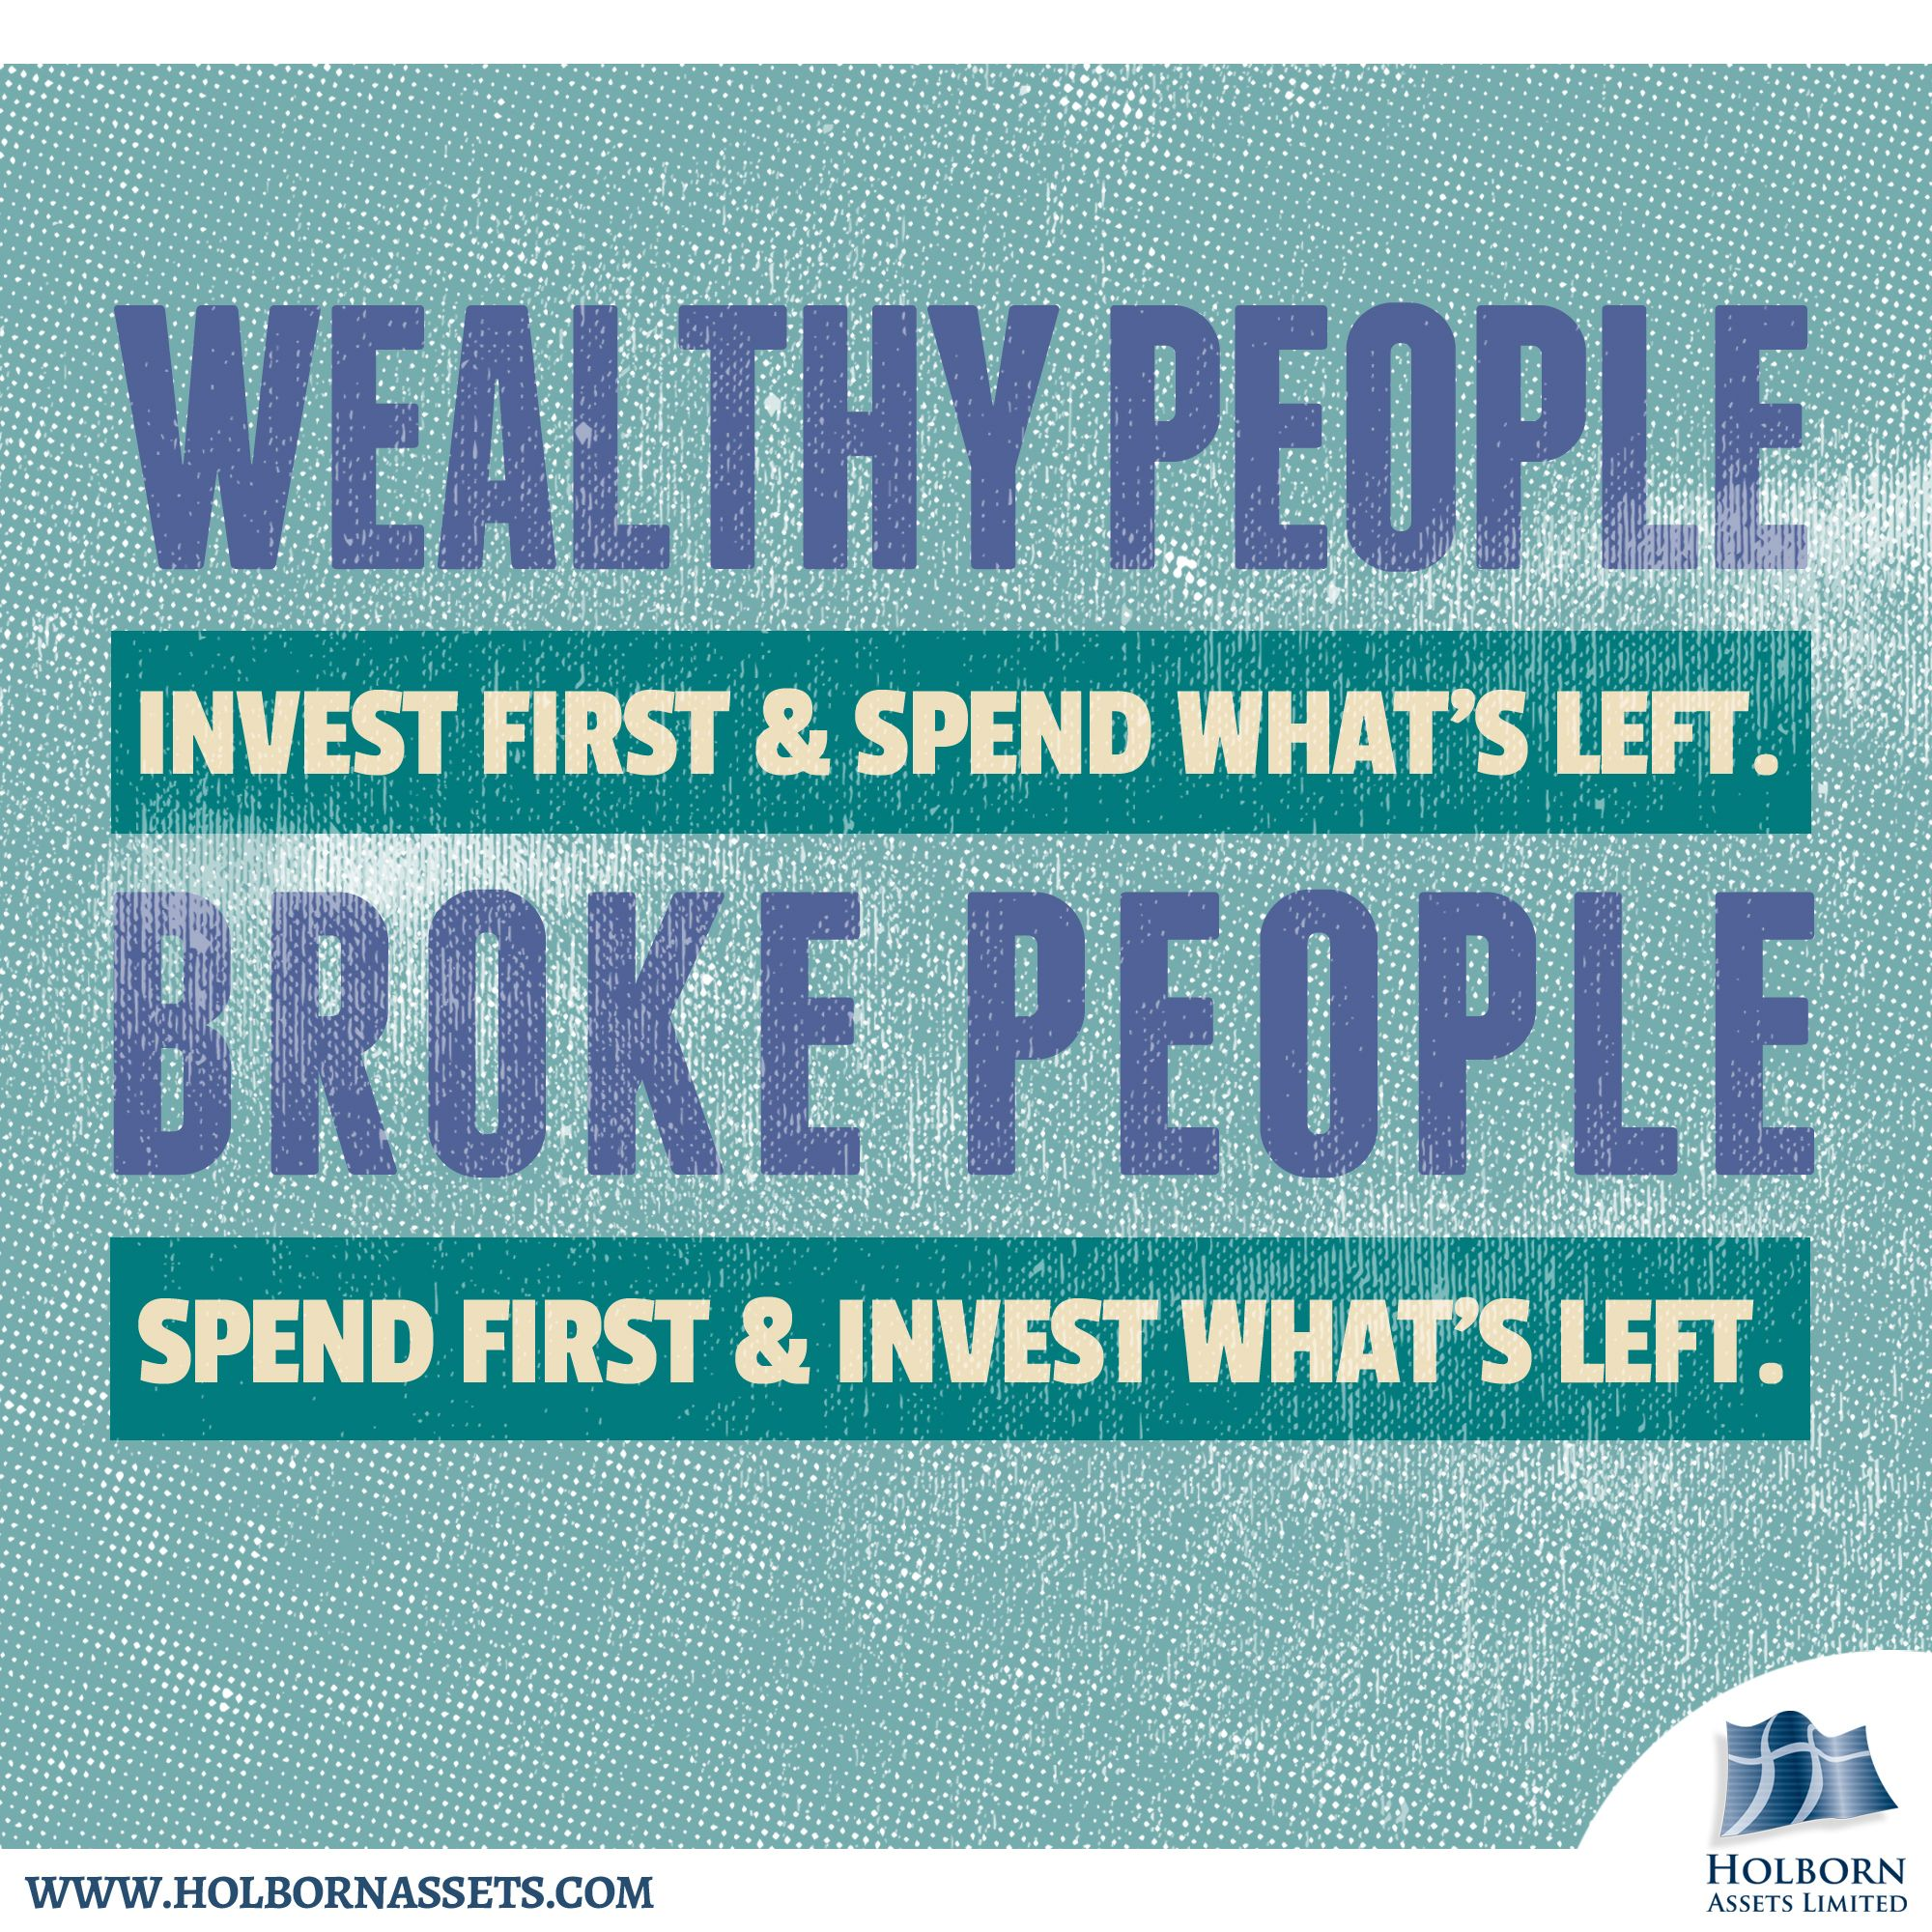 MORNING MONEY TIP Wishing you a productive day ahead